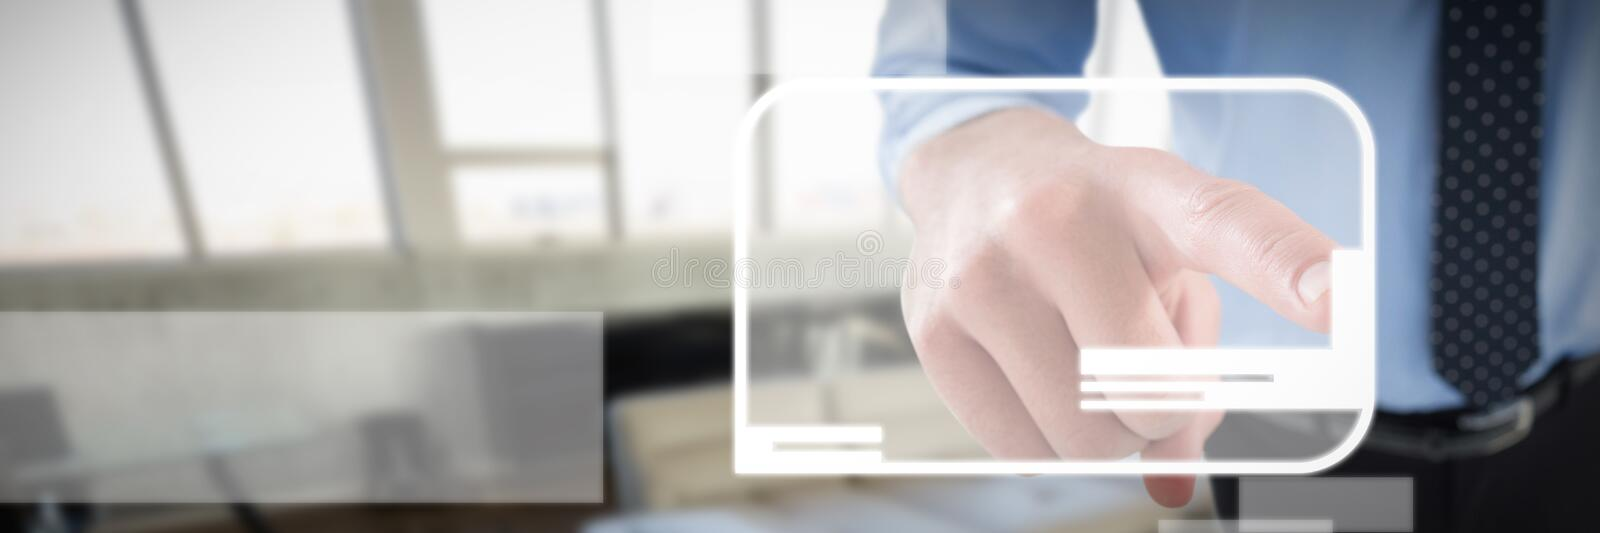 High angle view of businessman using imaginary screen against high angle interior of modern office stock image